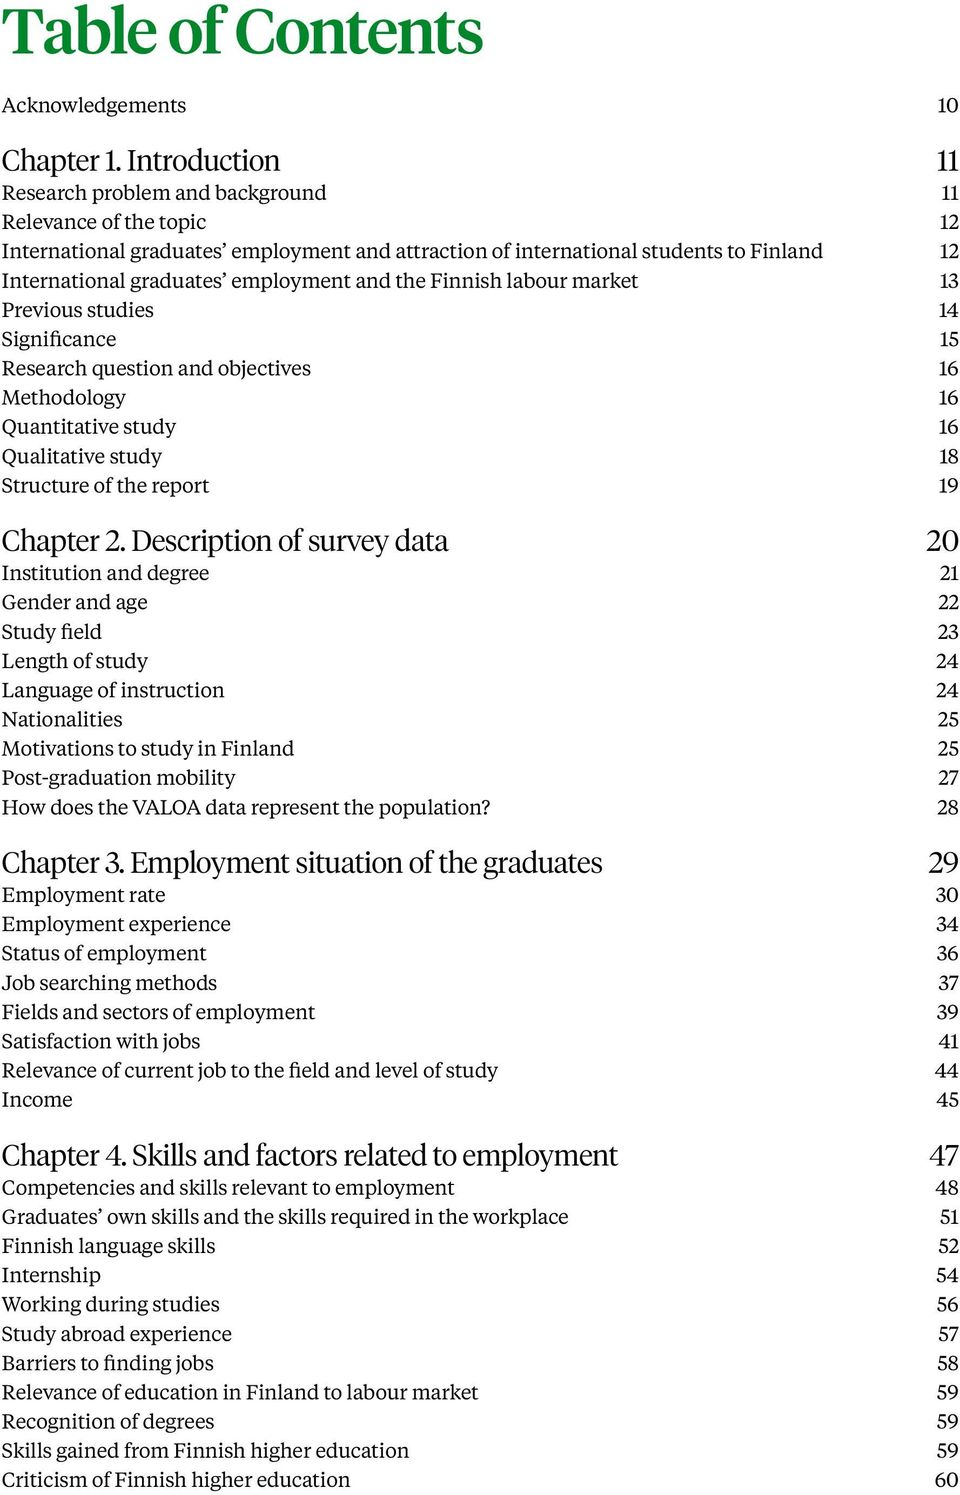 employment and the Finnish labour market 13 Previous studies 14 Significance 15 Research question and objectives 16 Methodology 16 Quantitative study 16 Qualitative study 18 Structure of the report